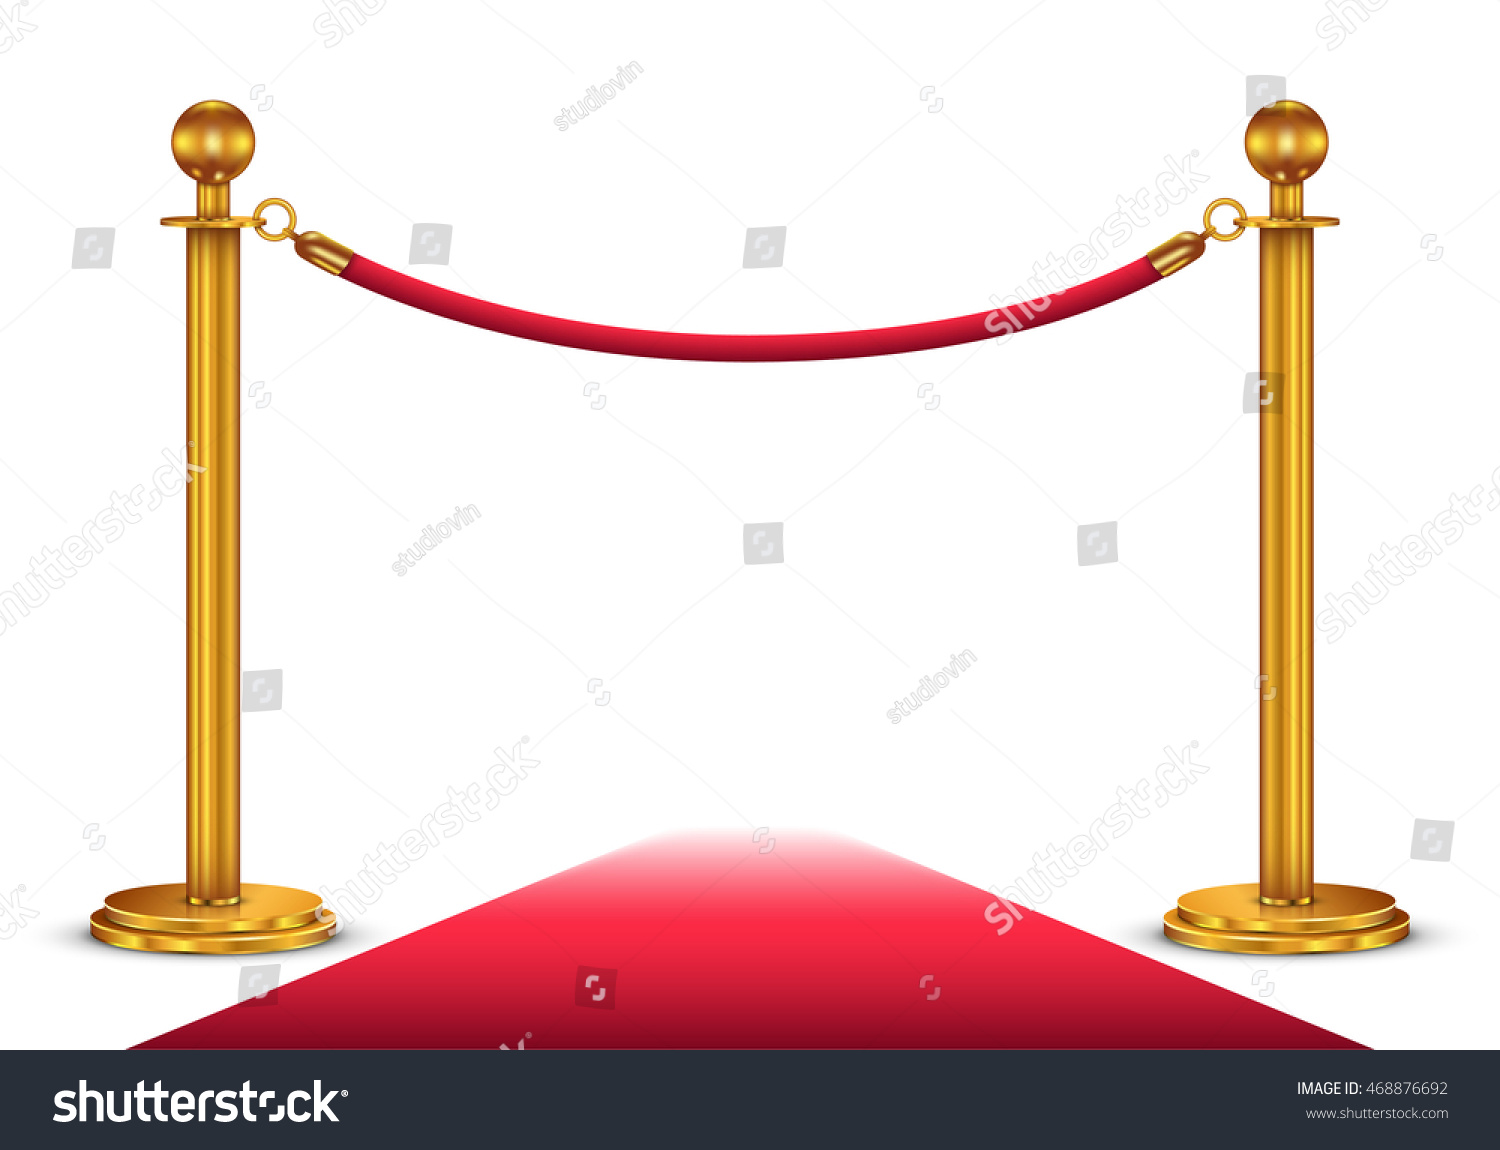 Image Result For Red Carpet And Post Hire